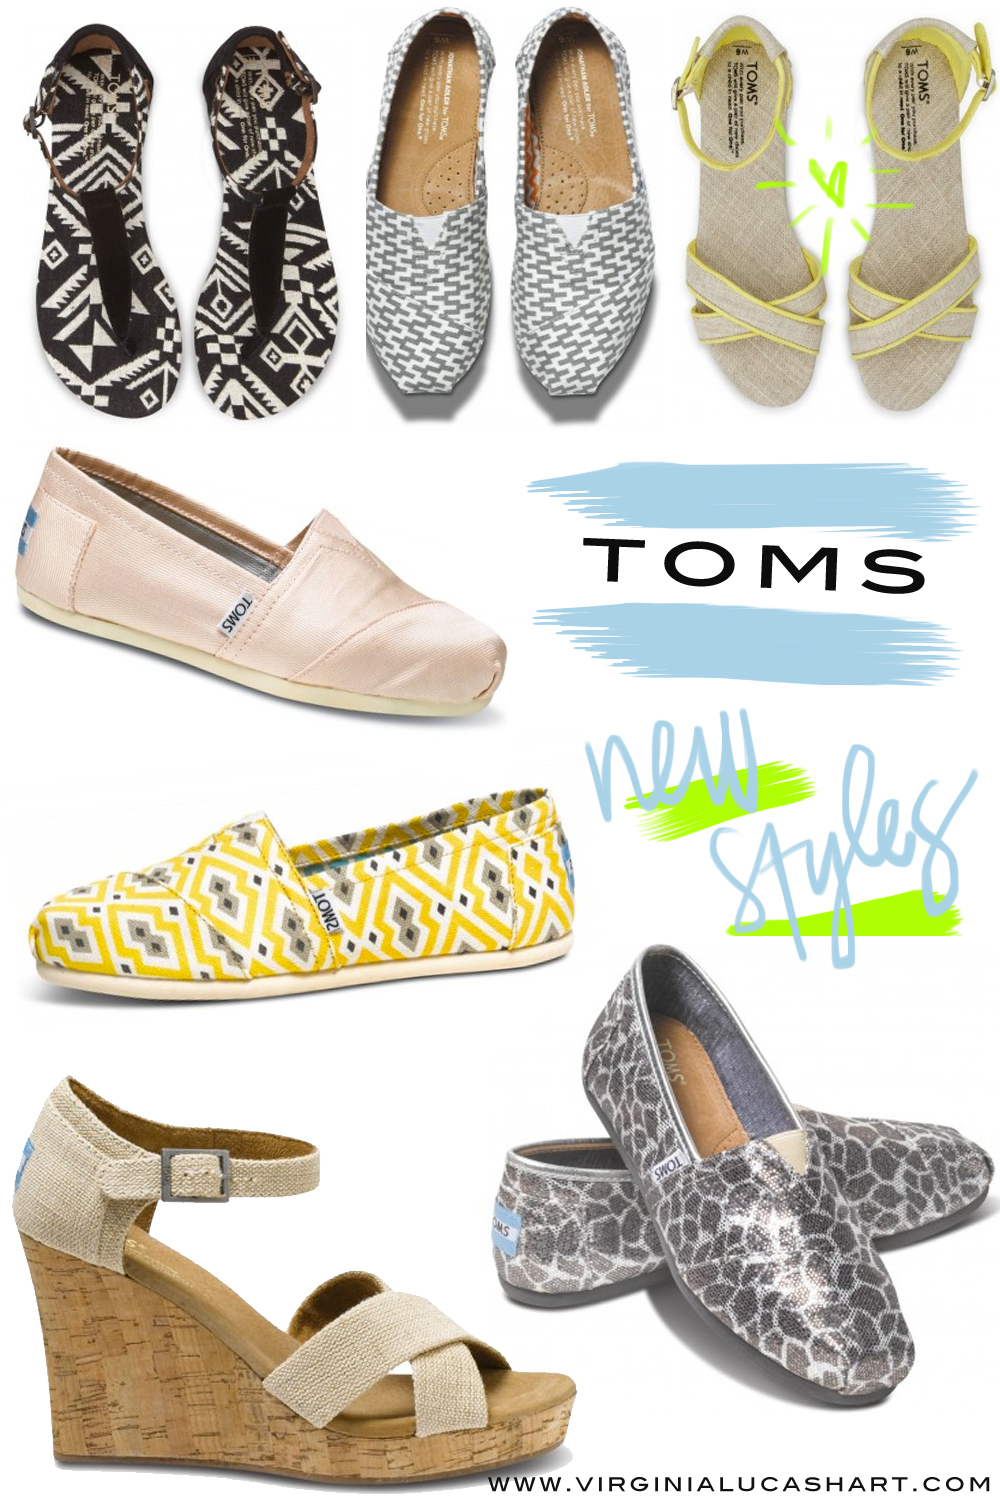 Toms new styles